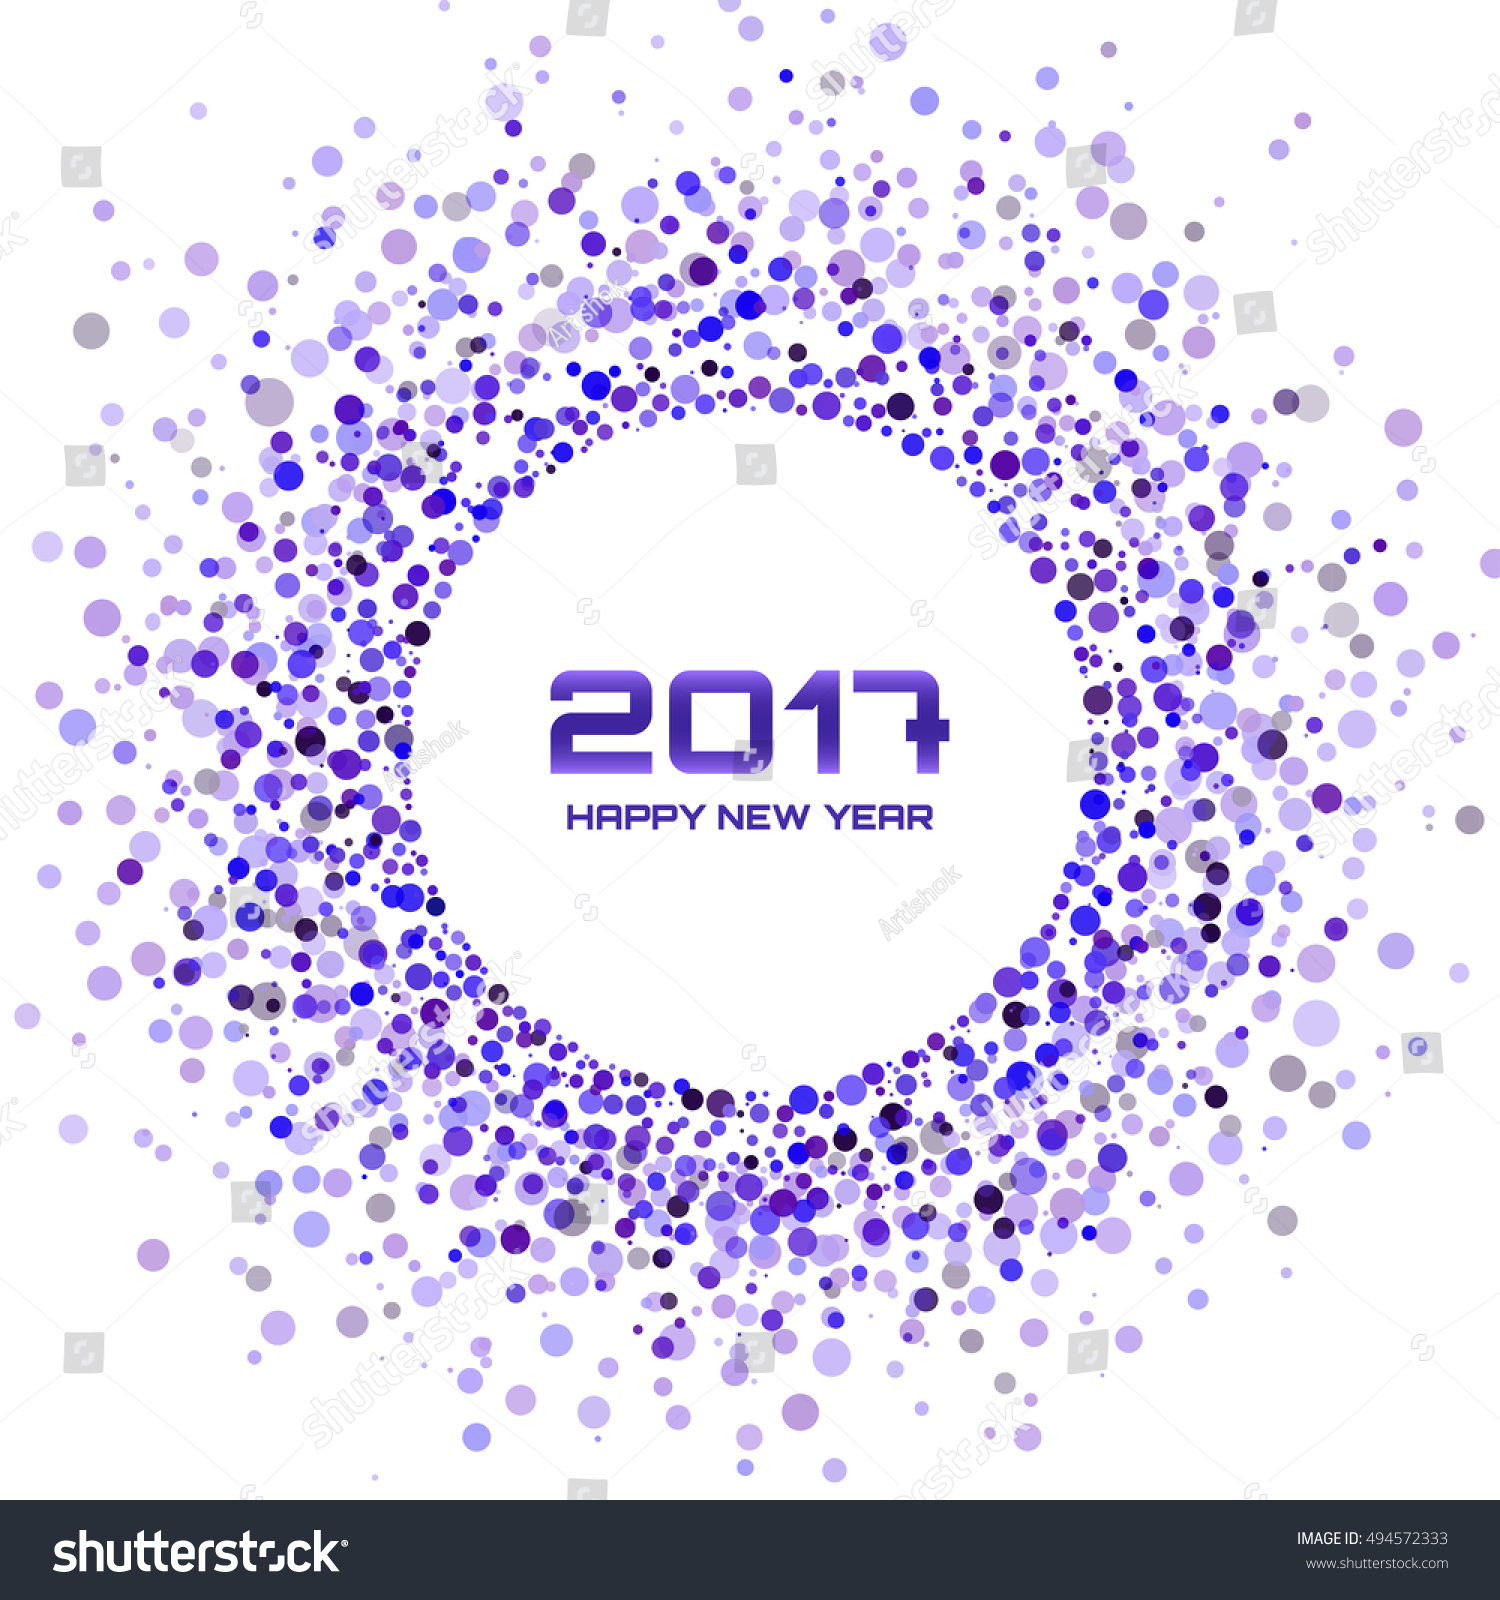 violet circle new year 2017 border on white background transparent confetti circles new year frame